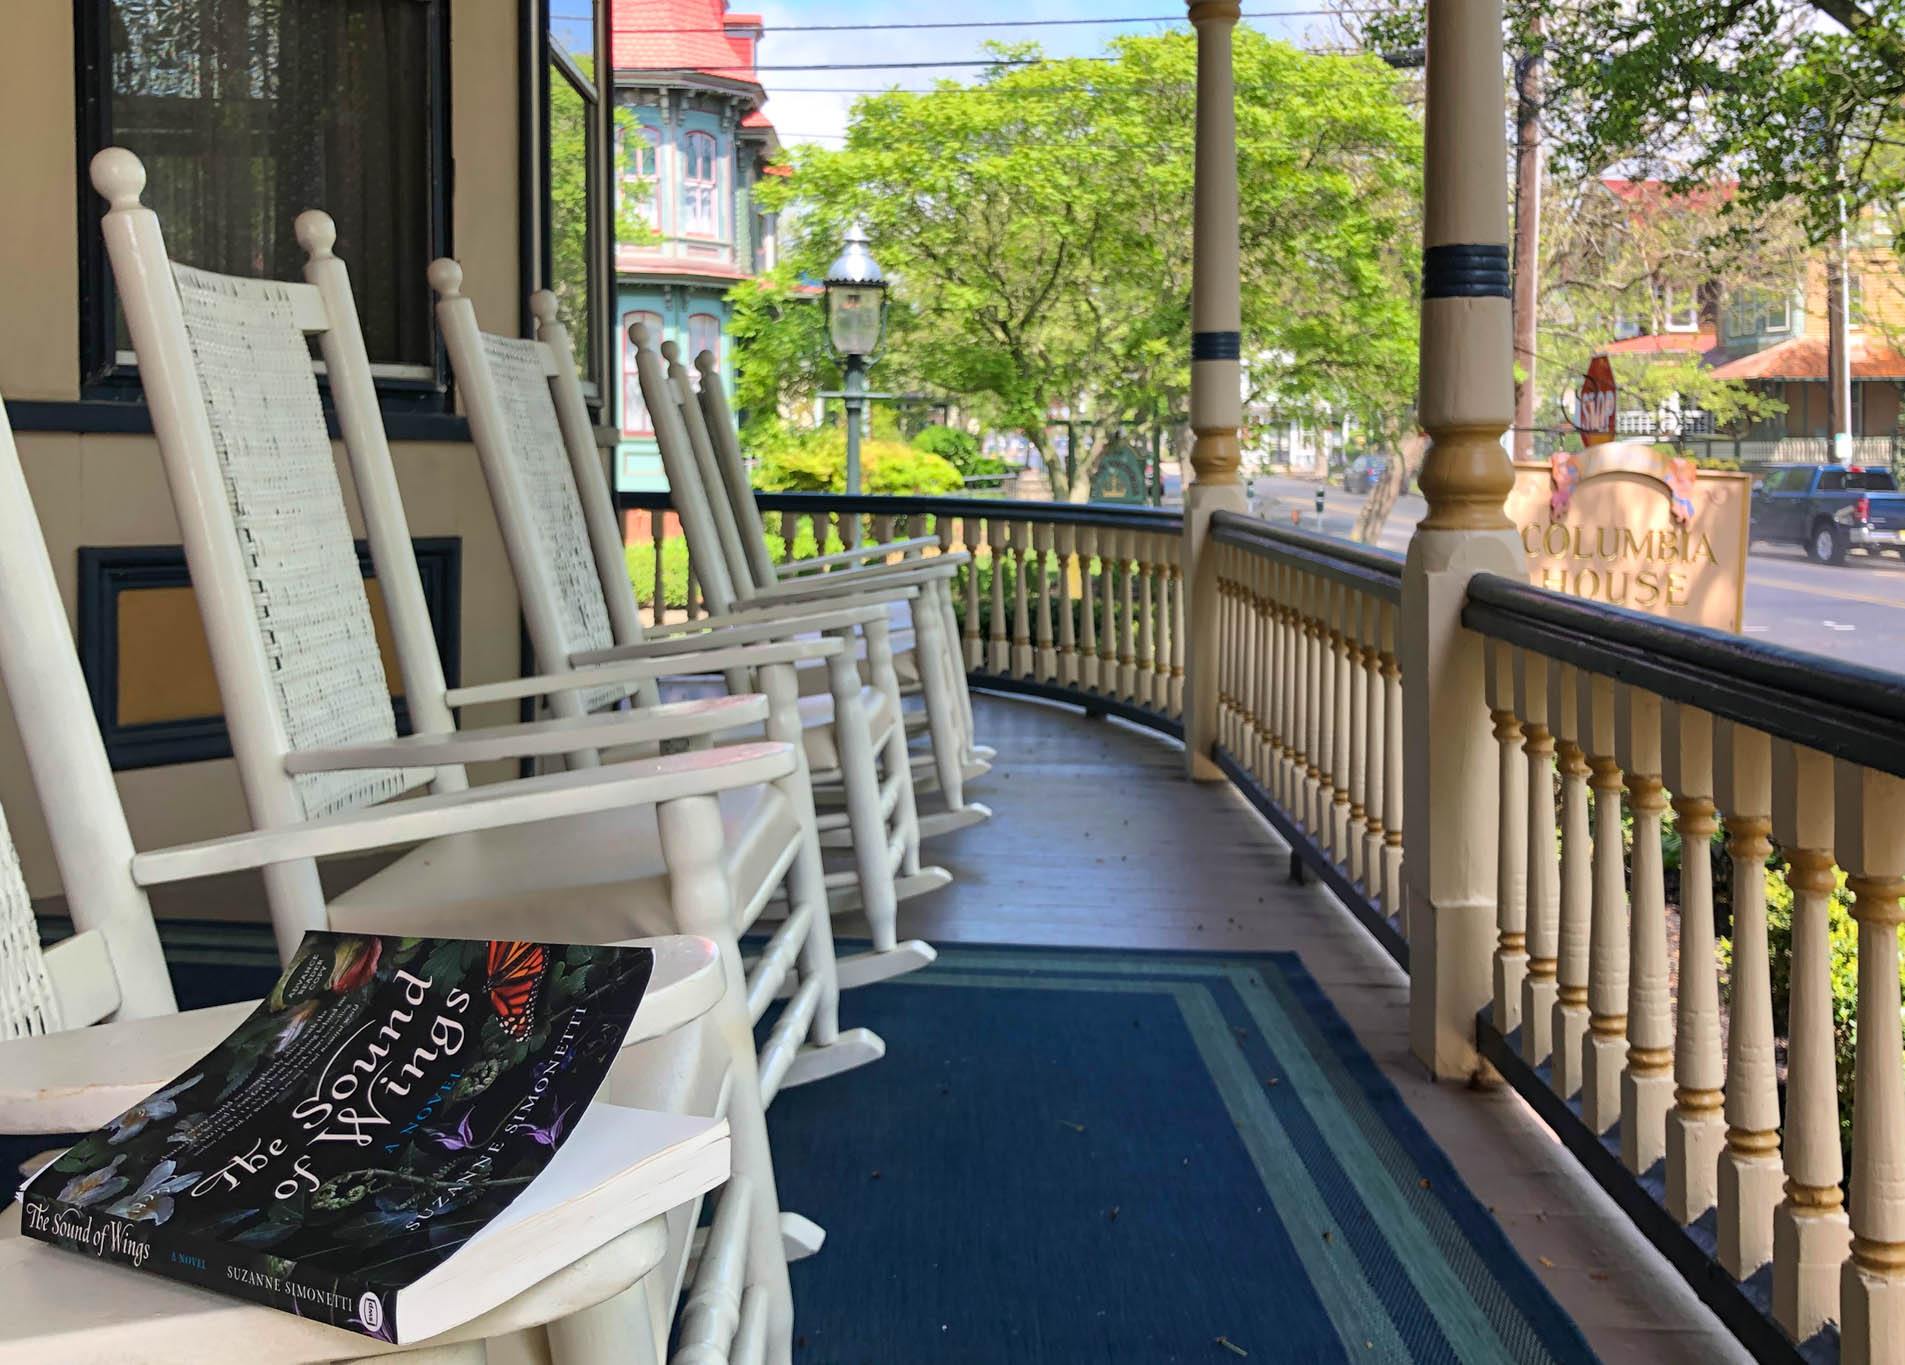 sitting on the Columbia House porch with the book The Sound Of Wings